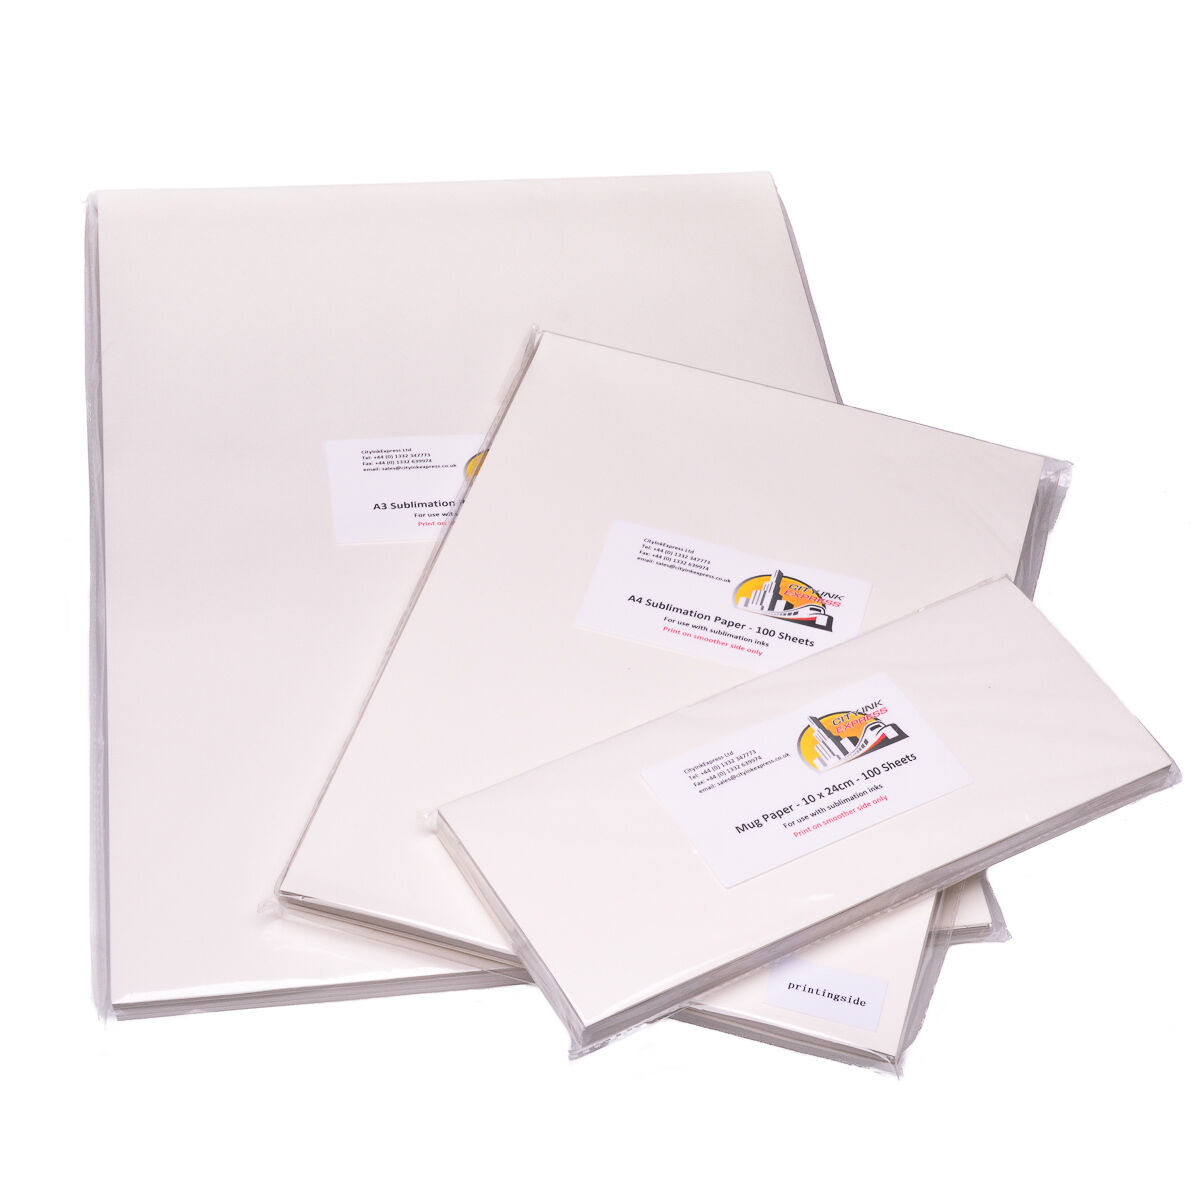 Sublimation machines and cartridges  Heat press transfer and